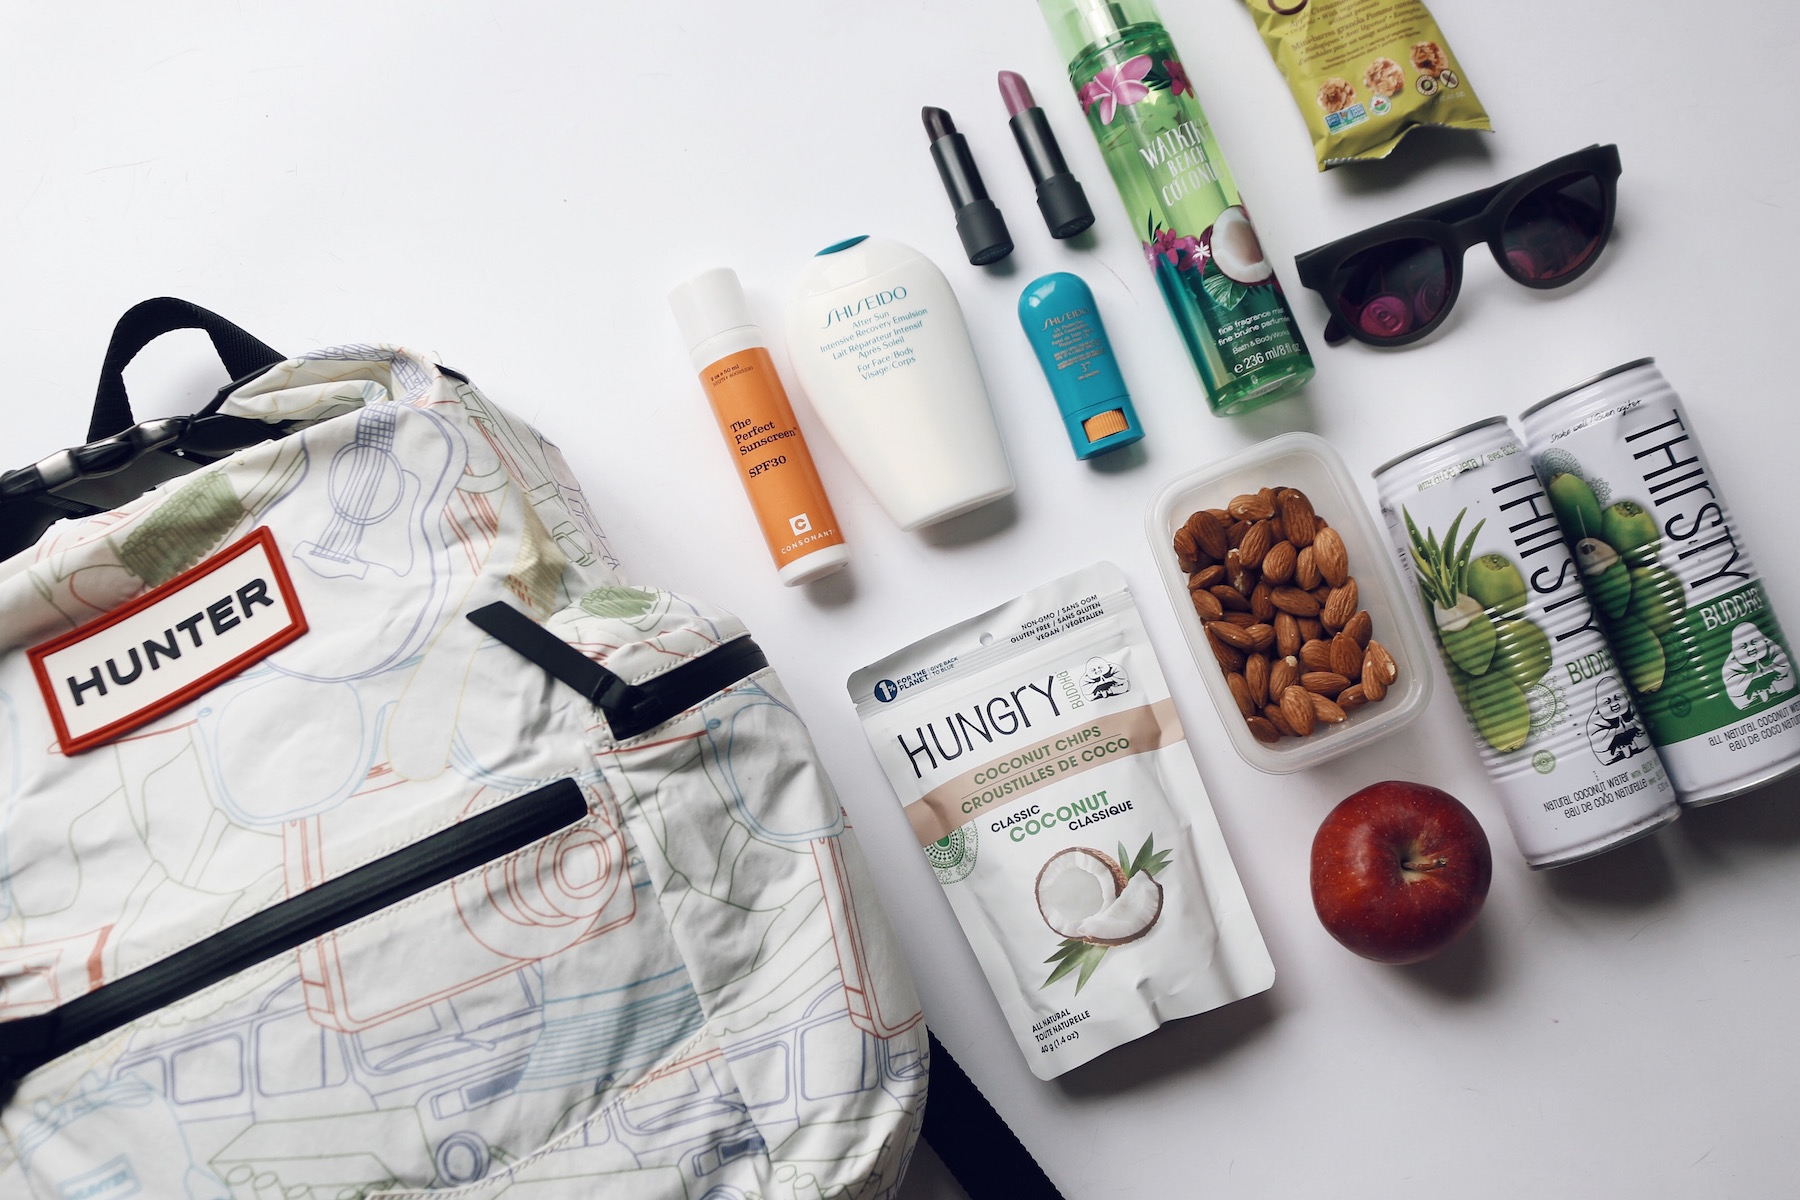 Hunter backpack from SS16 jam packed with my festival essentials including aloe coconut water from  Thirsty Buddha  and coconut chips. I'm obsessed!